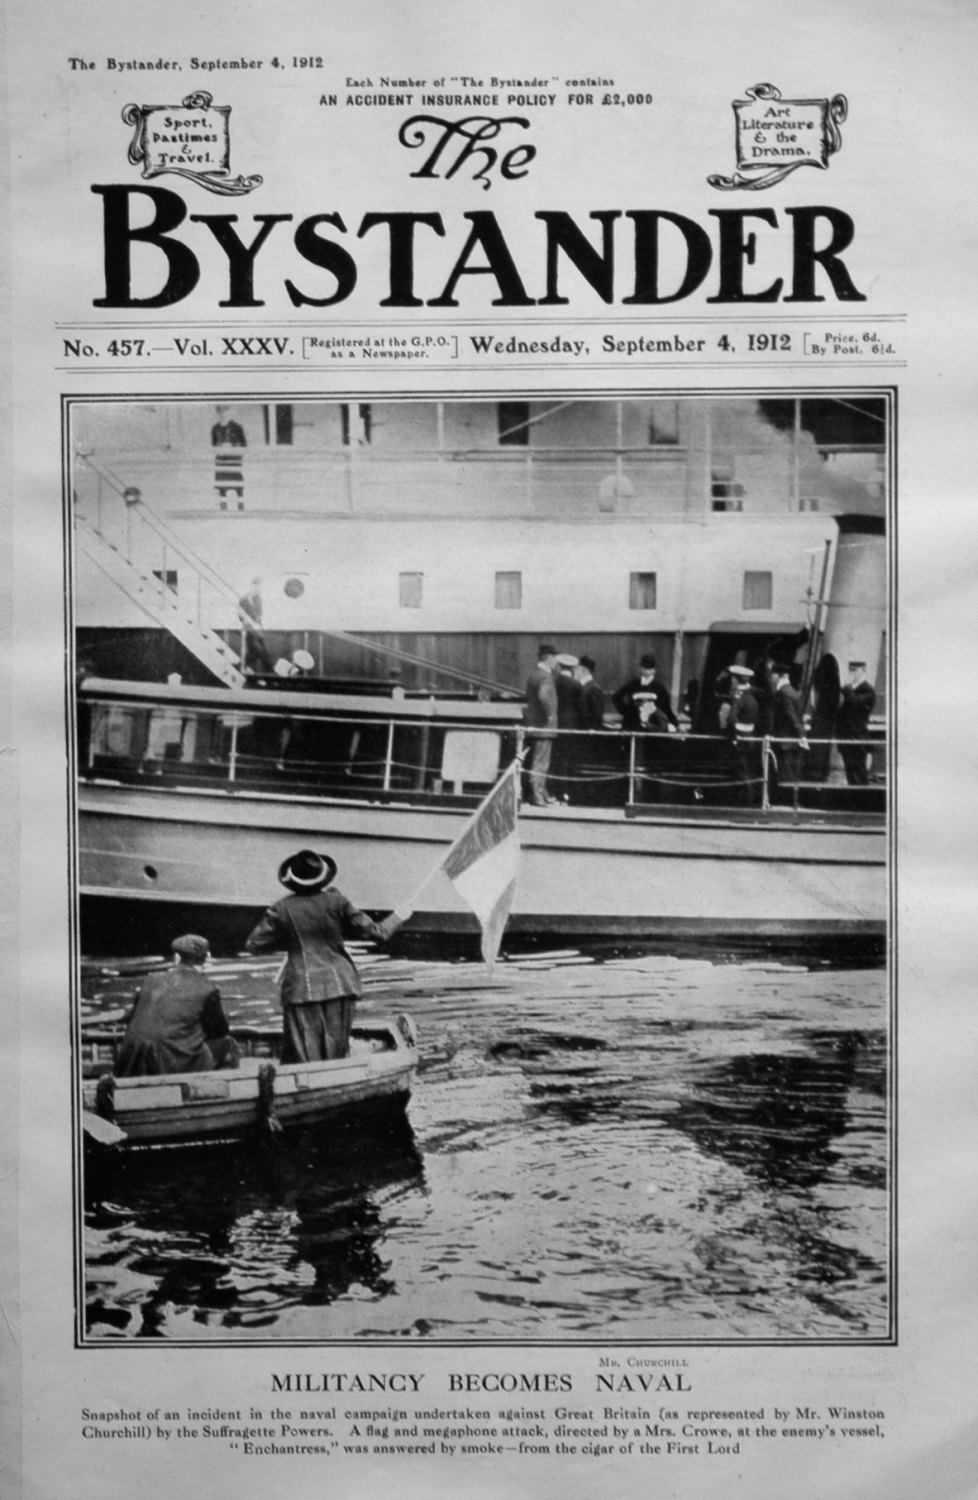 The Bystander September 4th 1912.